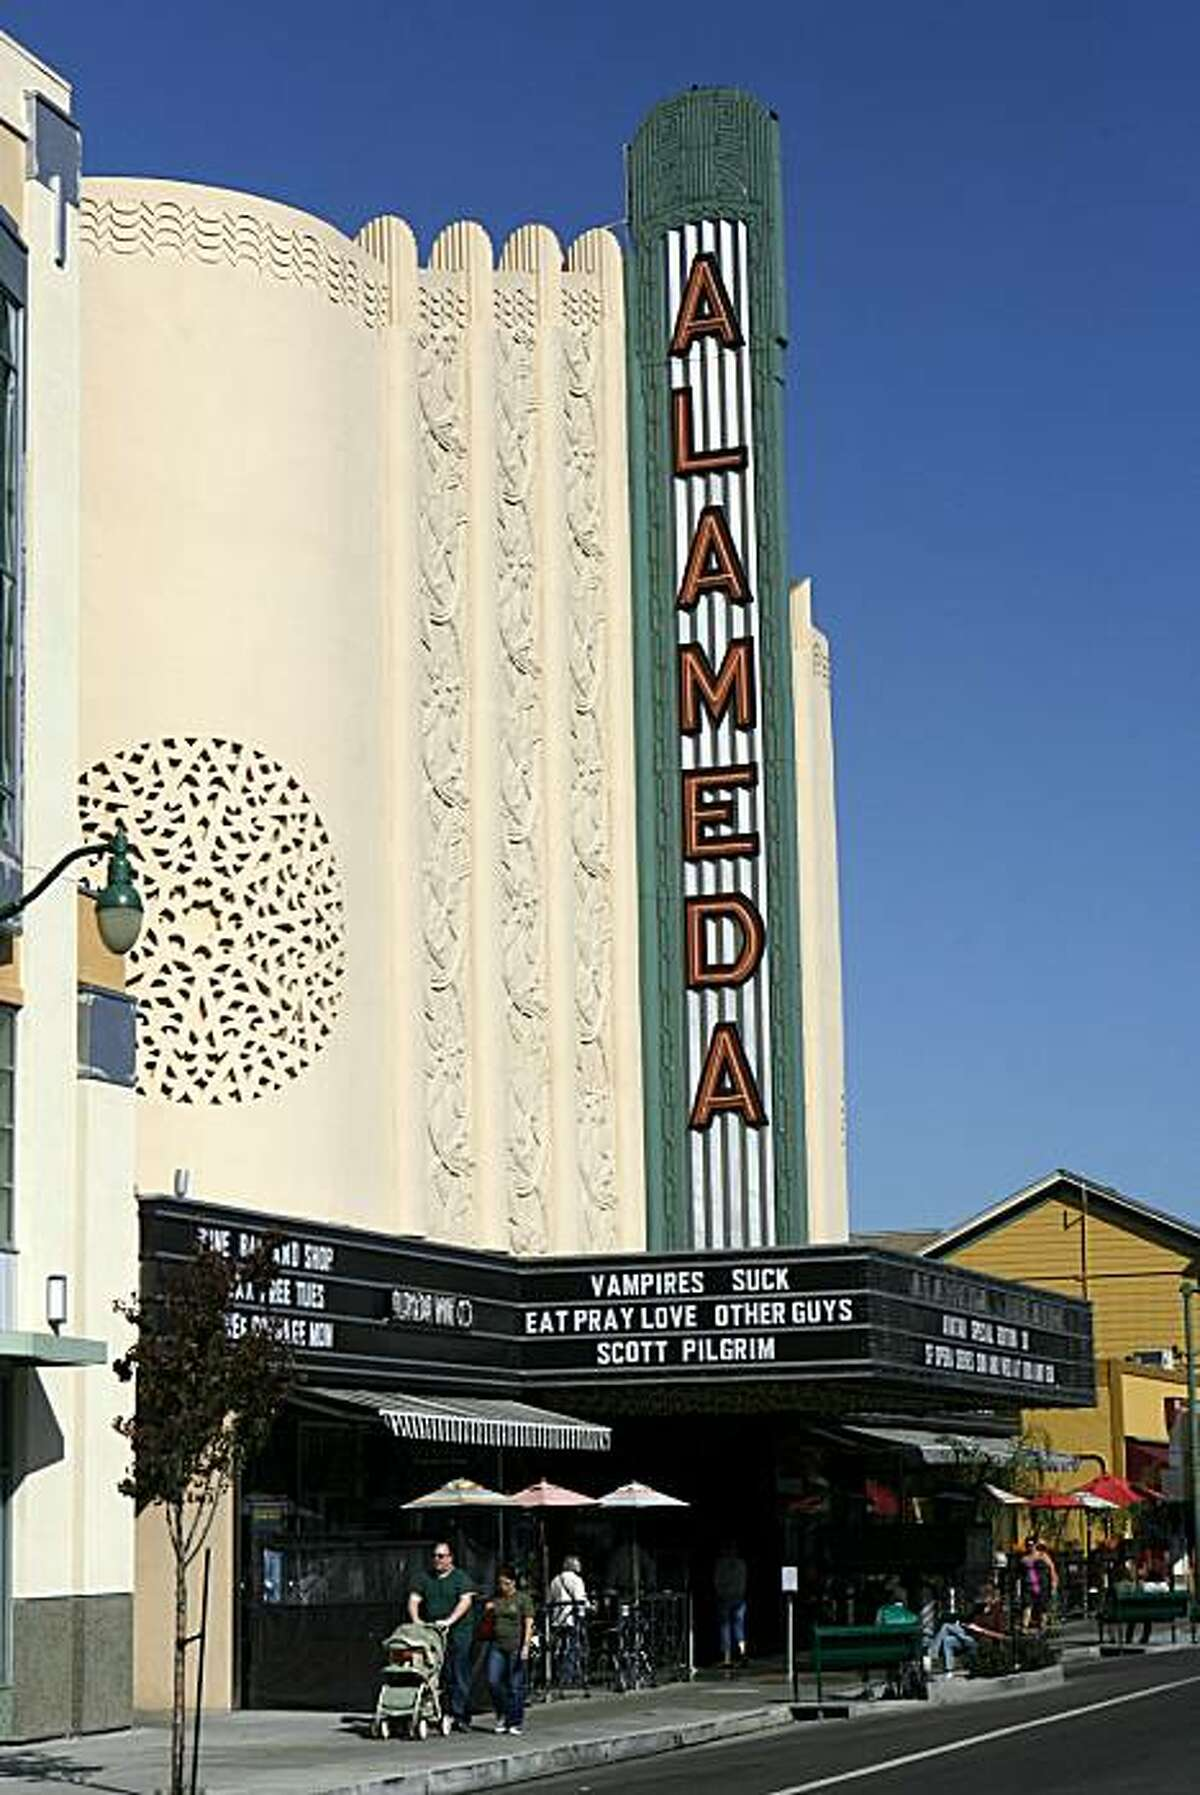 Families walk past the Alameda Theatre, August. 8, 2010, in Alameda, Calif. Alameda, a nineteenth-century bedroom community for San Francisco that is now struggling to plan for future growth, has preserved its small-town feel.